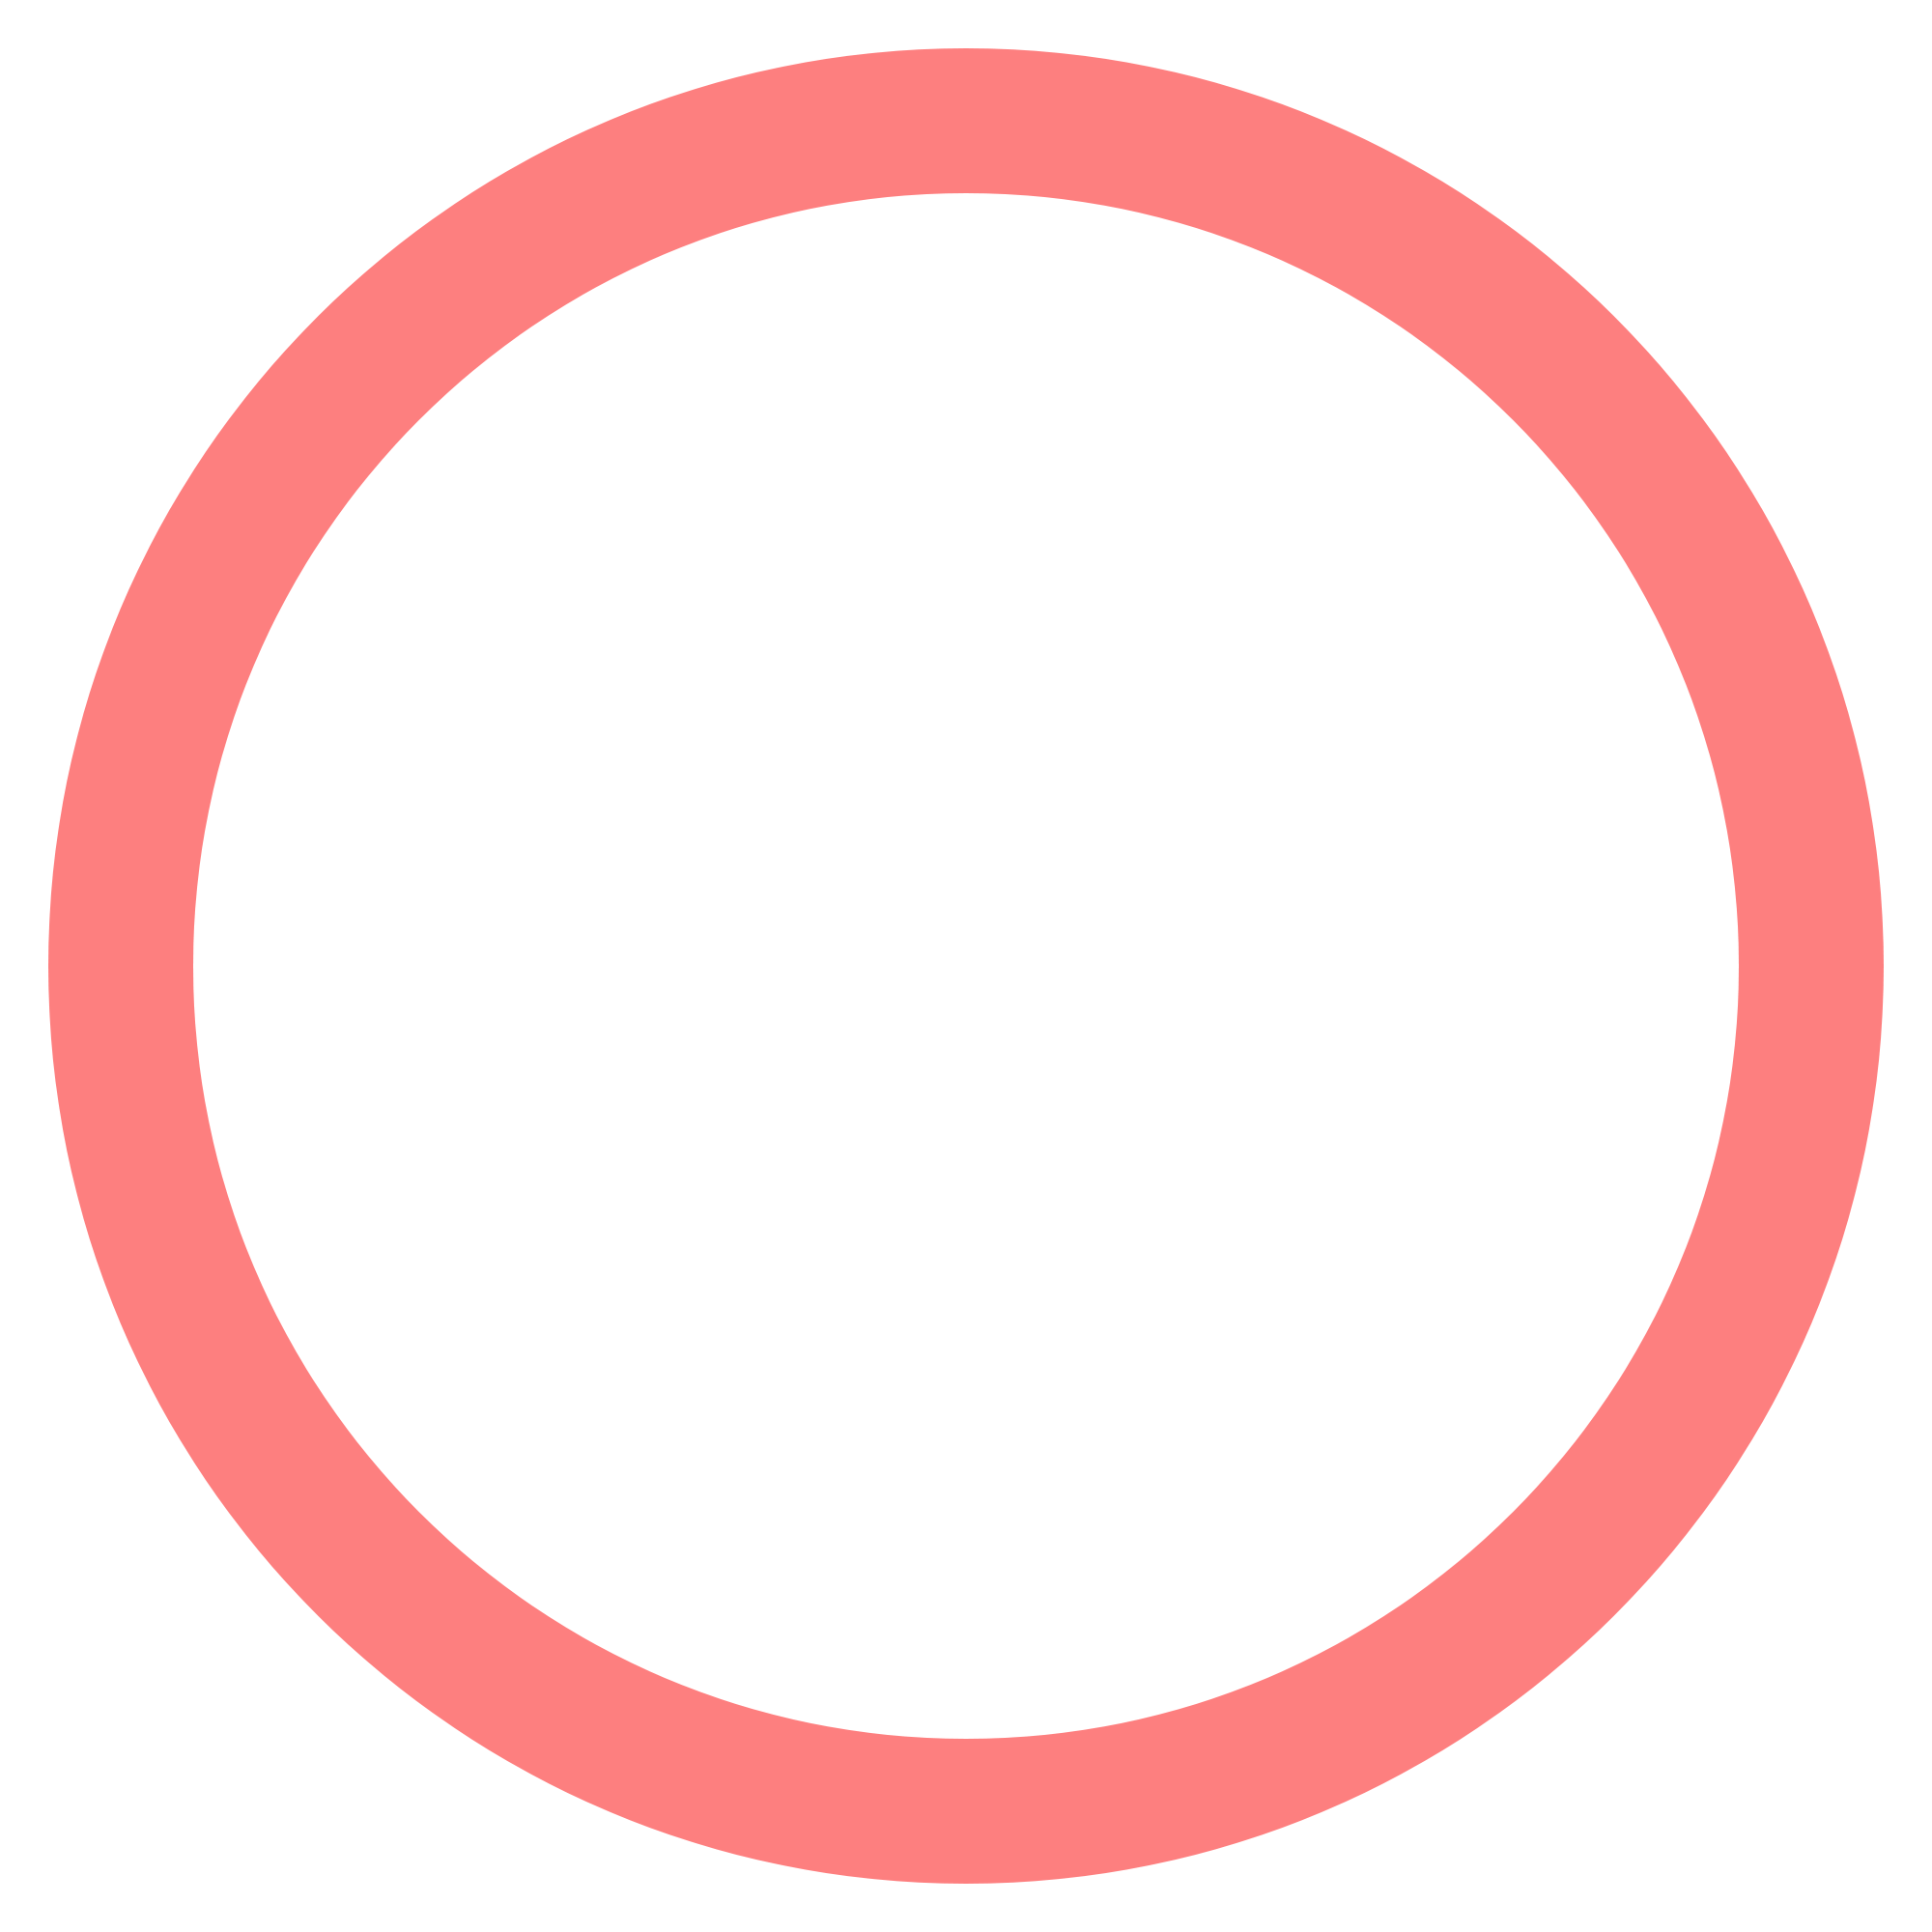 Red circle outline png. File brown svg wikimedia